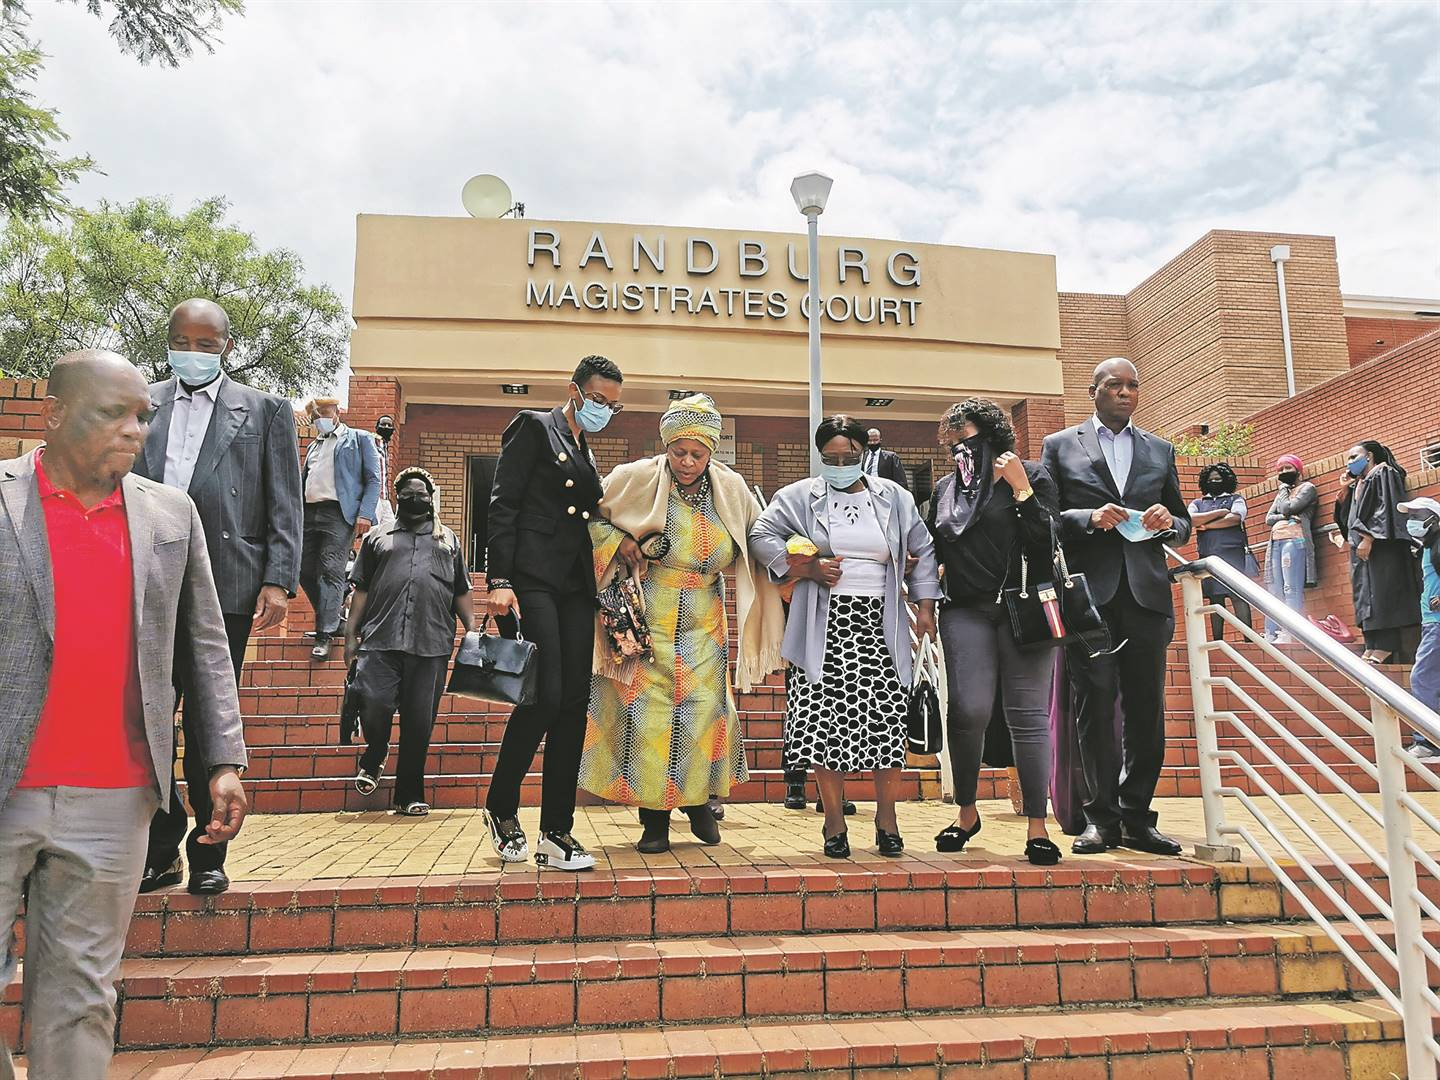 Members of the Zulu royal family were present in court when the accused, who were allegedly involved in the death of Prince Lethukuthula Zulu, appeared in the Randburg Magistrate's Court.